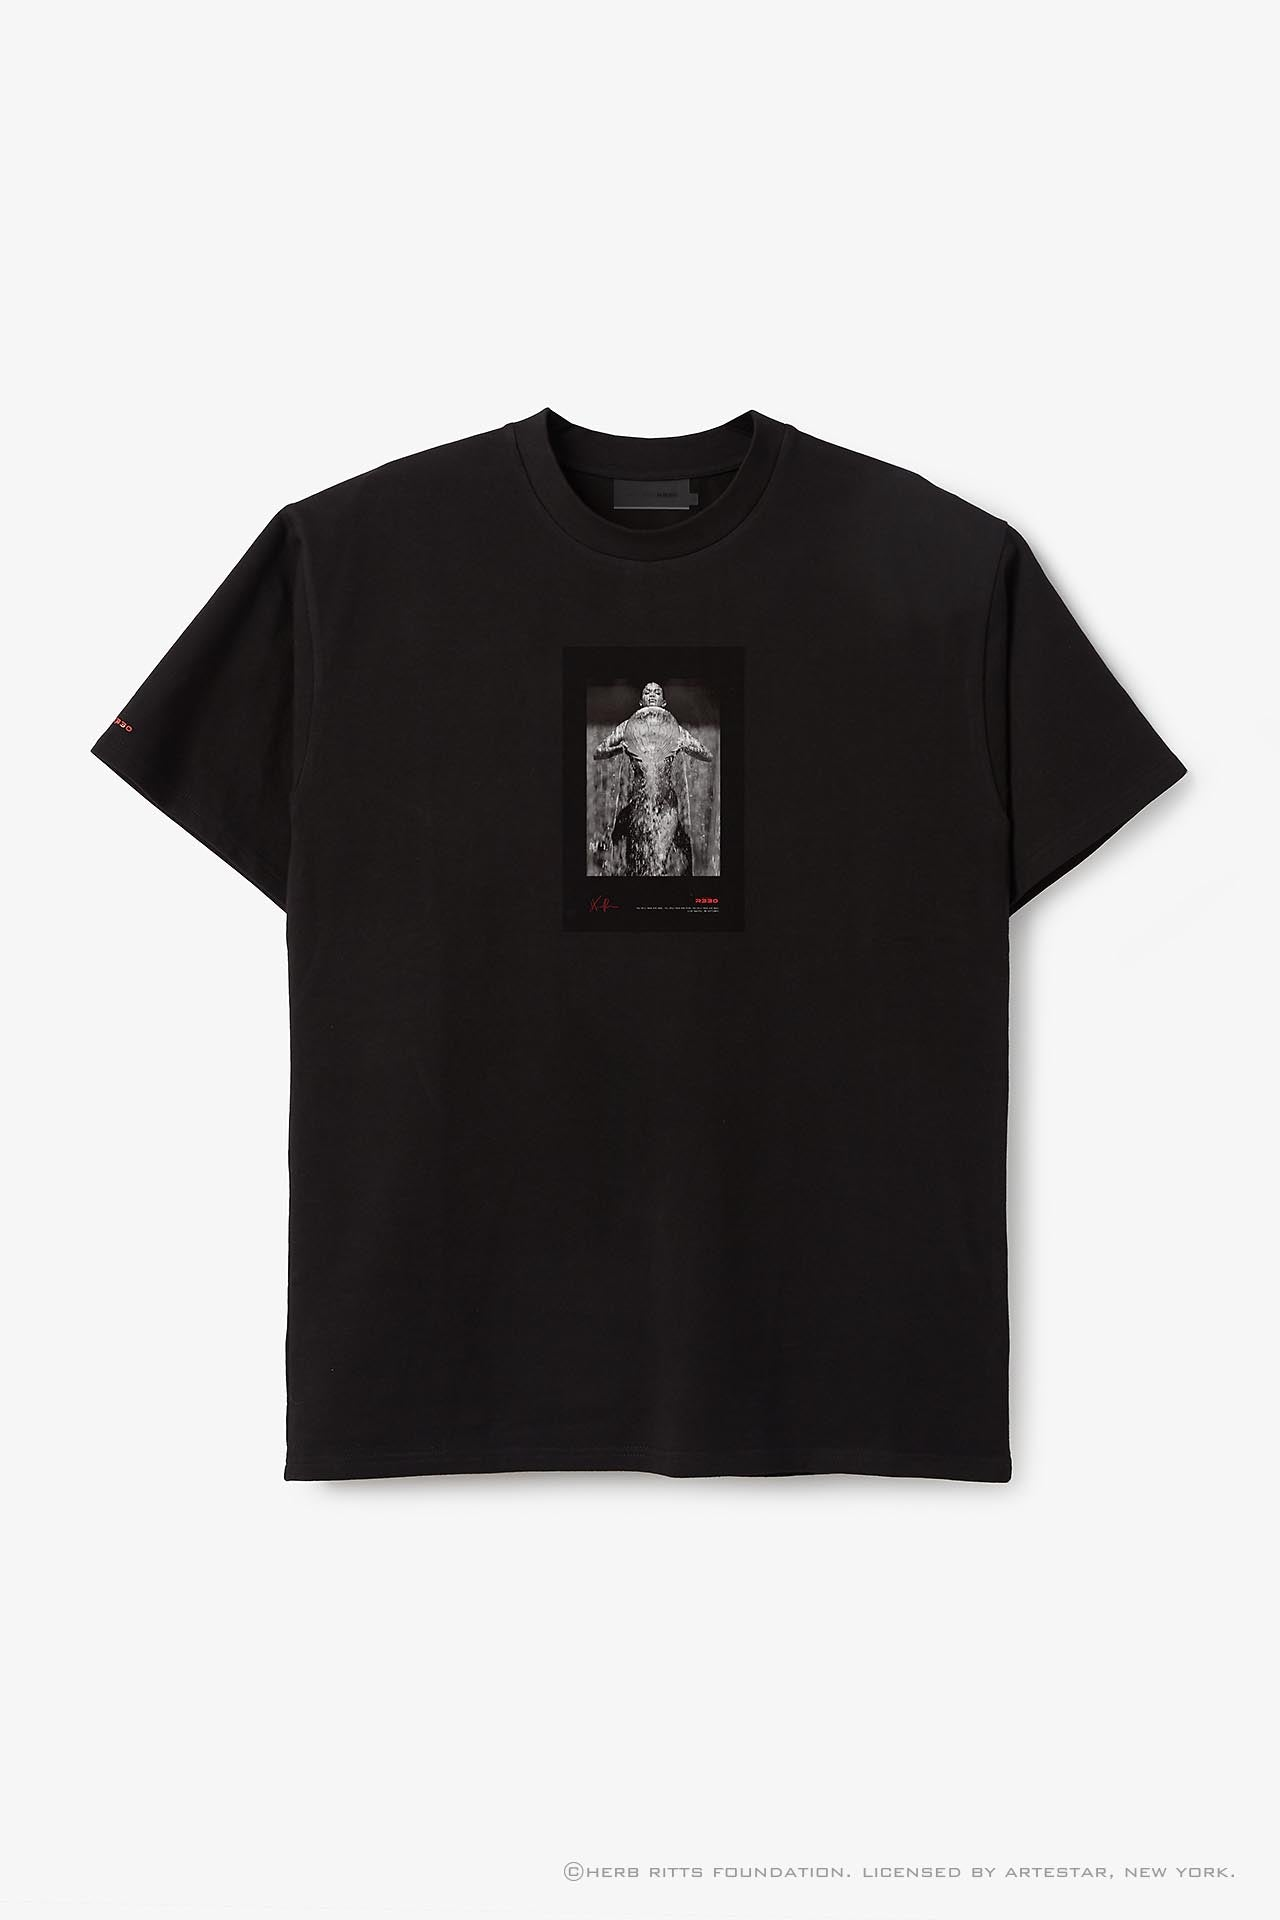 Men's Herb Ritts Tee